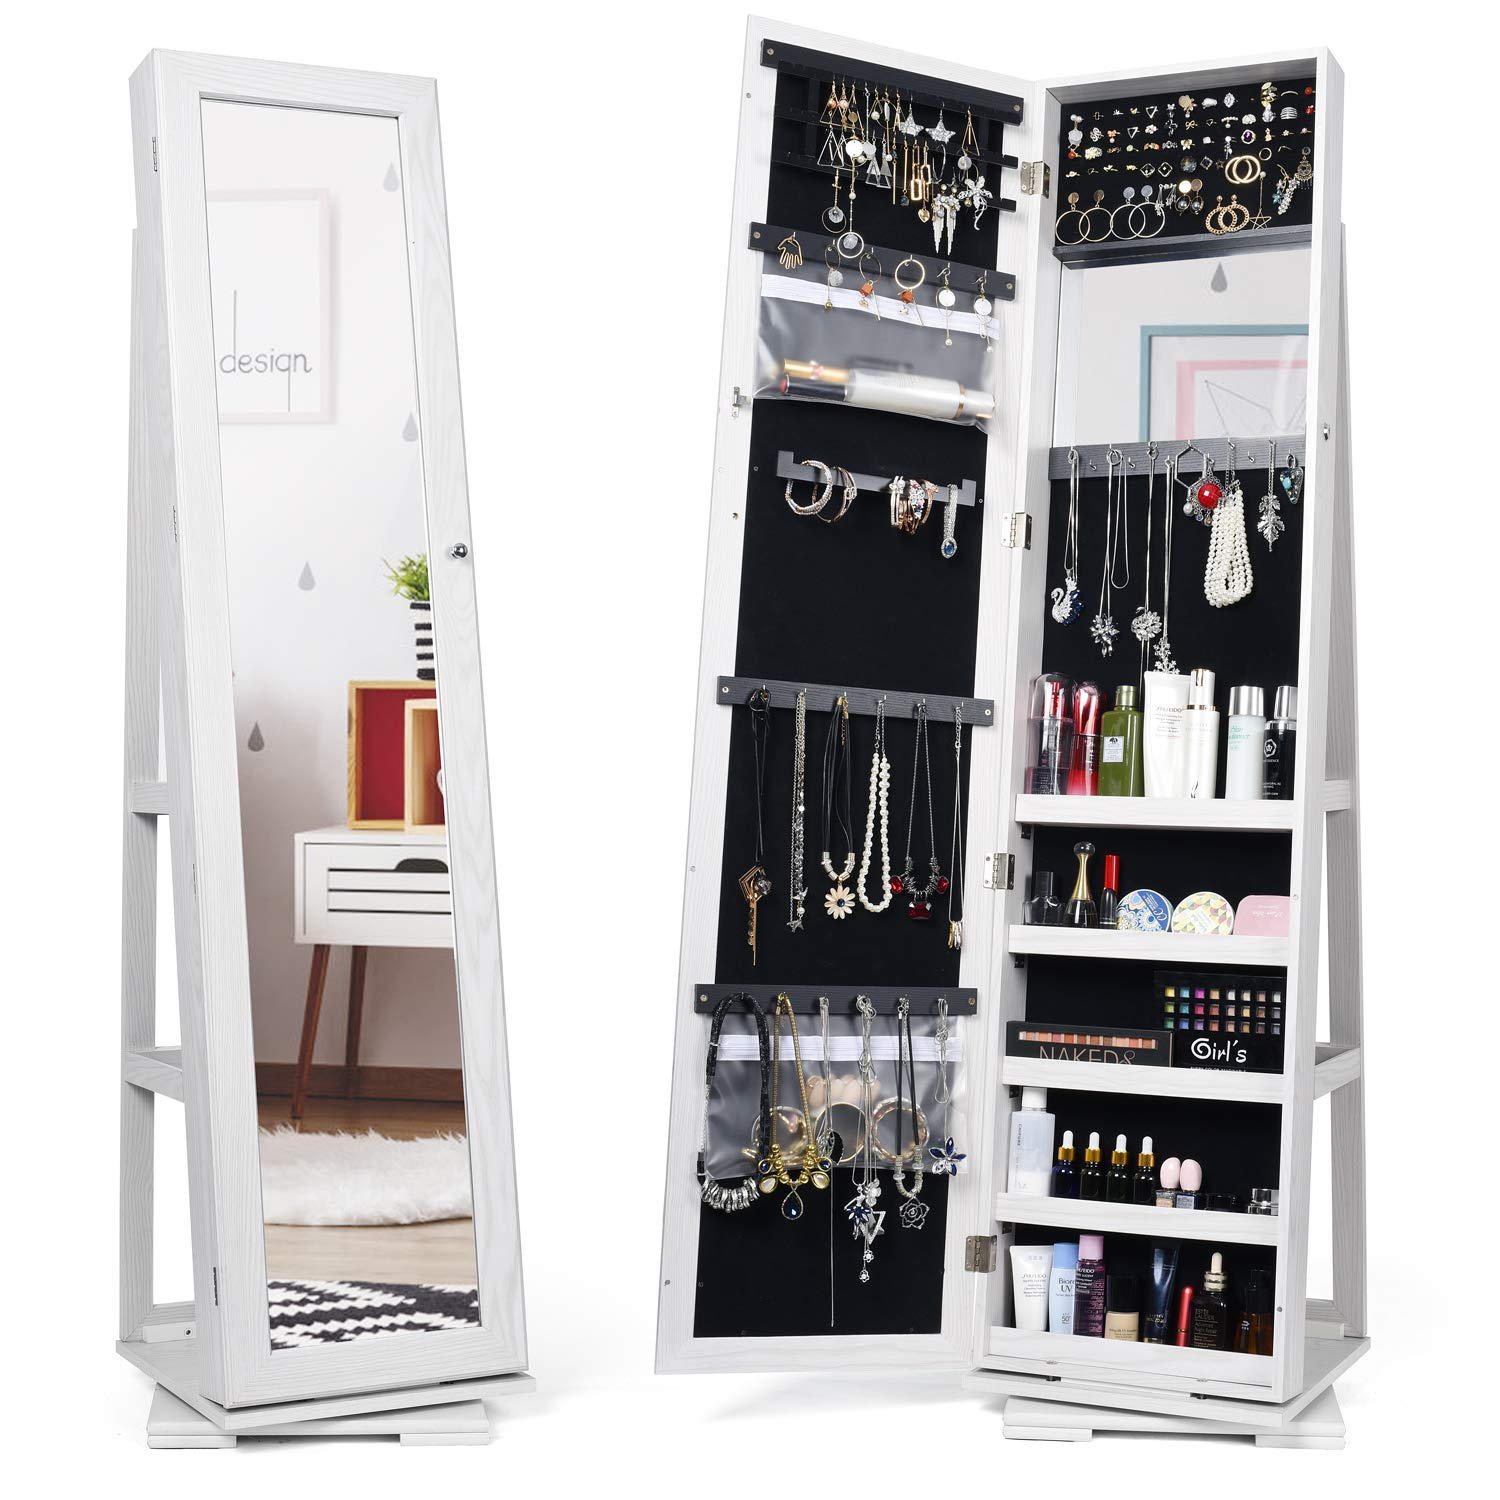 Titan Mall Jewelry Organizer Standing Jewelry Armoire with Mirror 360 Rotating Jewelry Cabinet Full Length Mirror Wall Mounted Jewelry Organizer 2019 Upgrade by Titan Mall